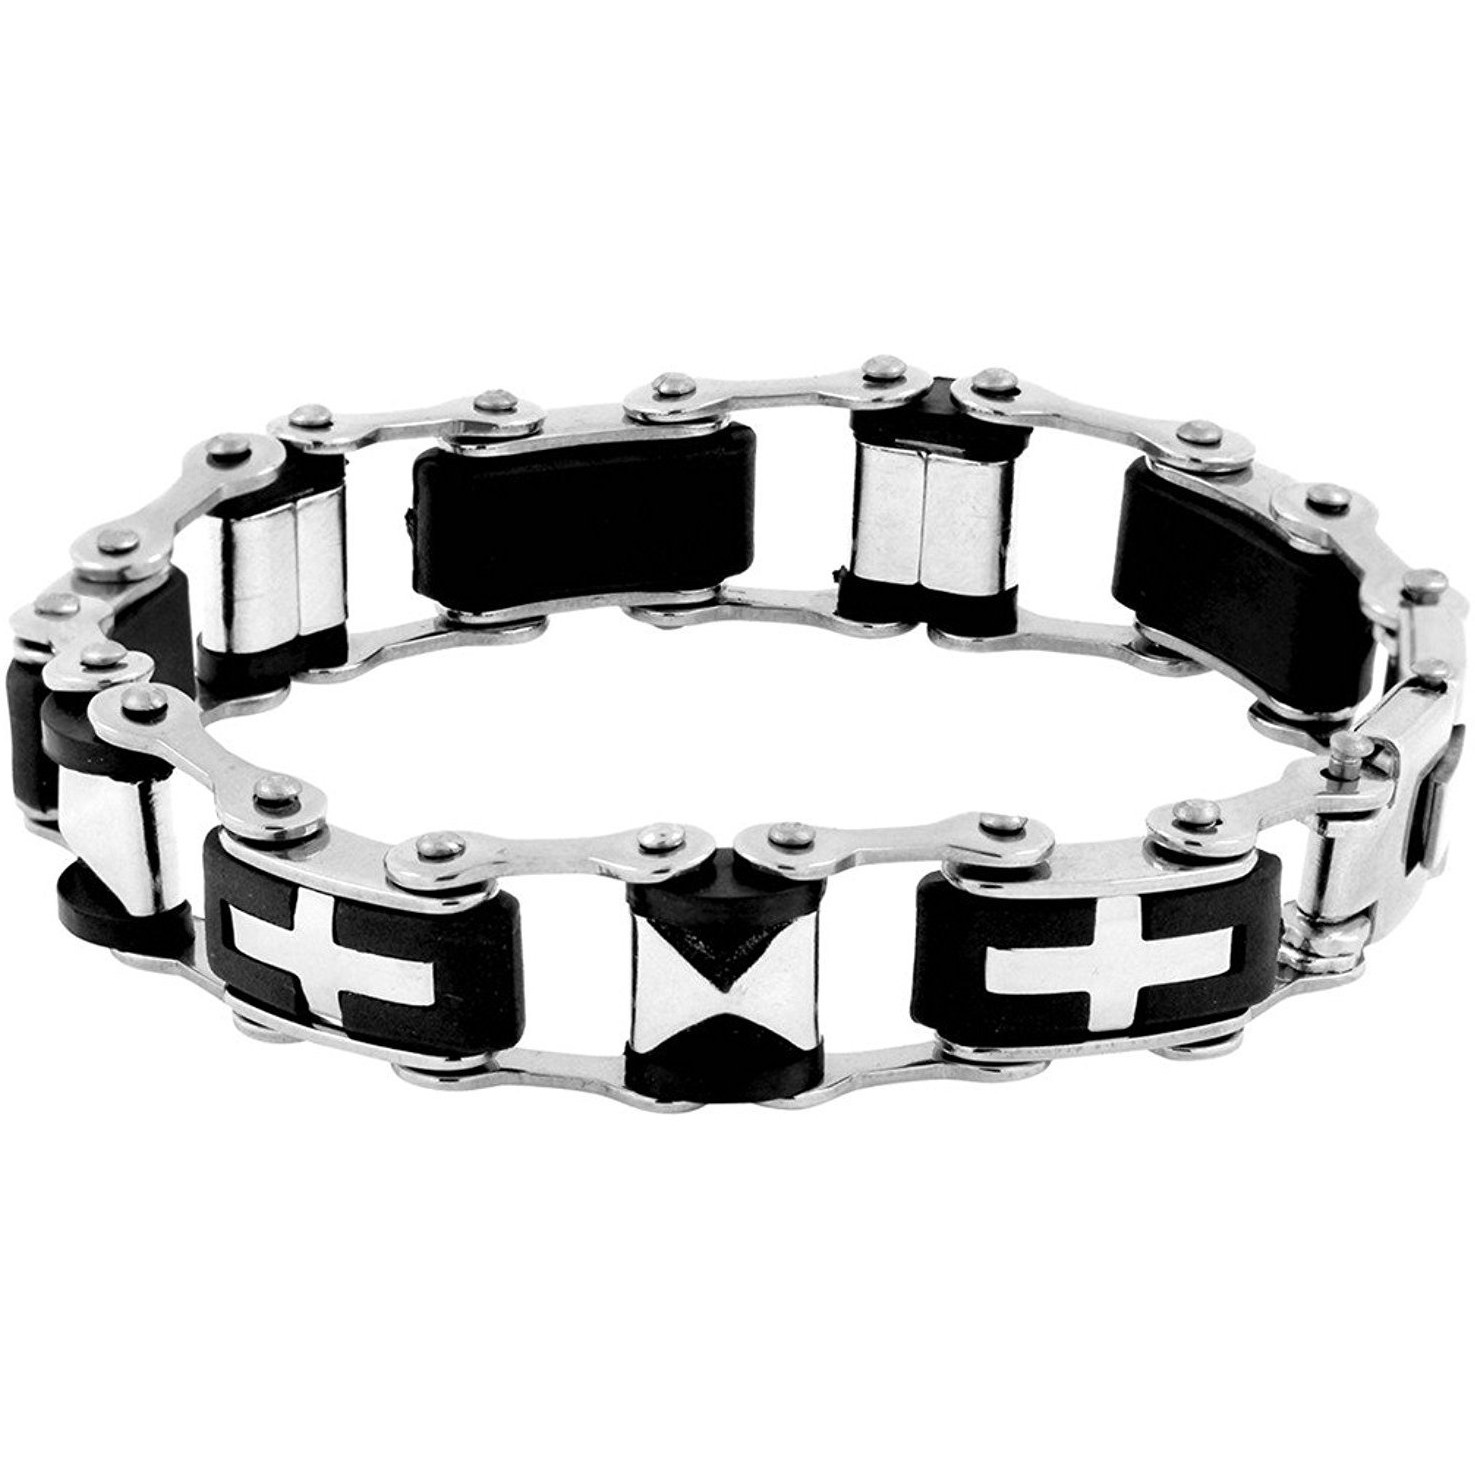 Zivom 3D Cross Biker Black Silver Surgical Stainless Steel Bracelet For Men